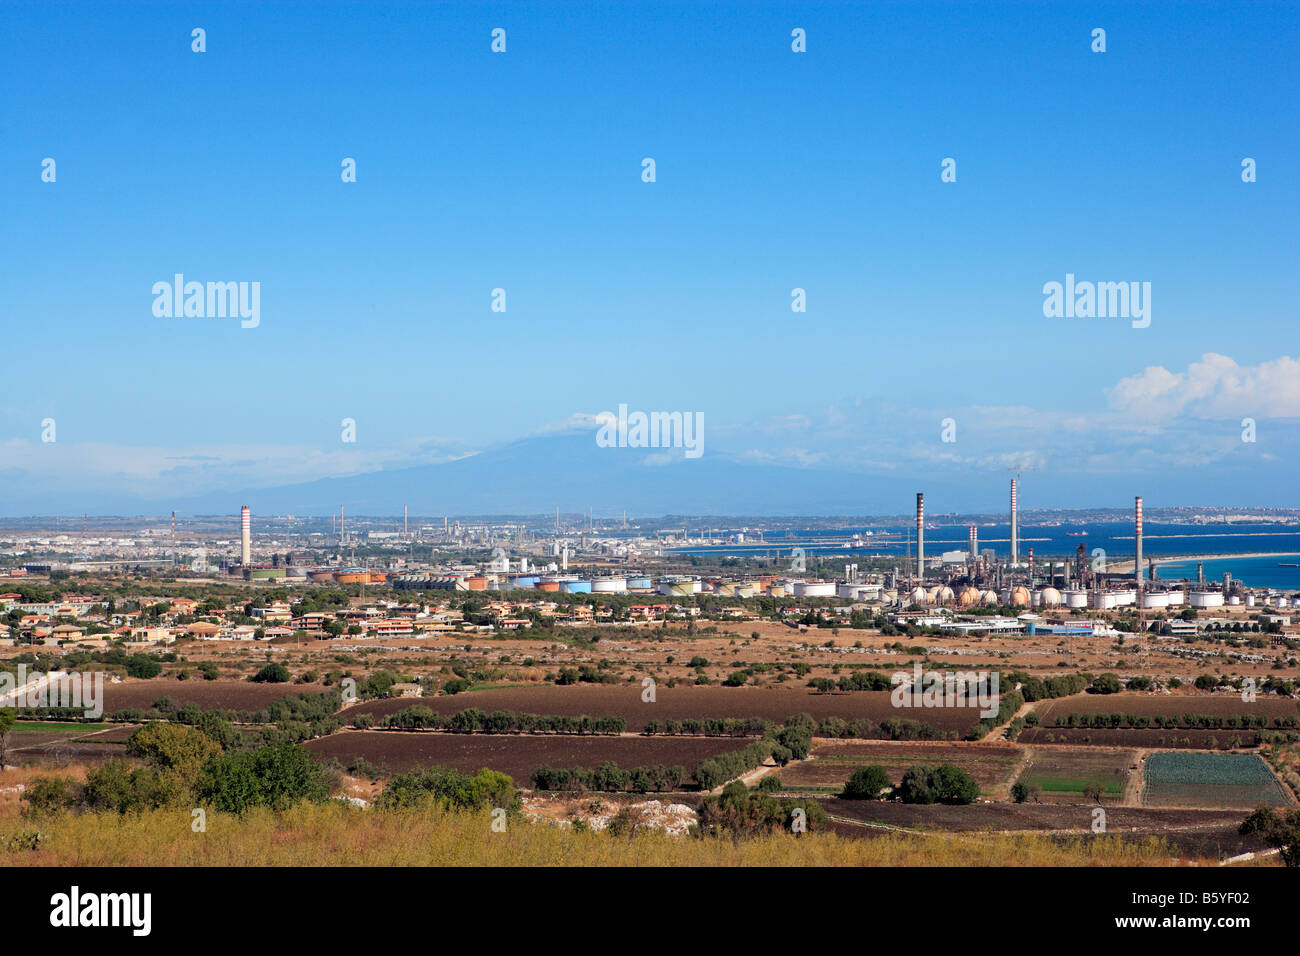 Oil Refineries, Petro-Chemical Industry and Mount Etna, Sicily - Stock Image